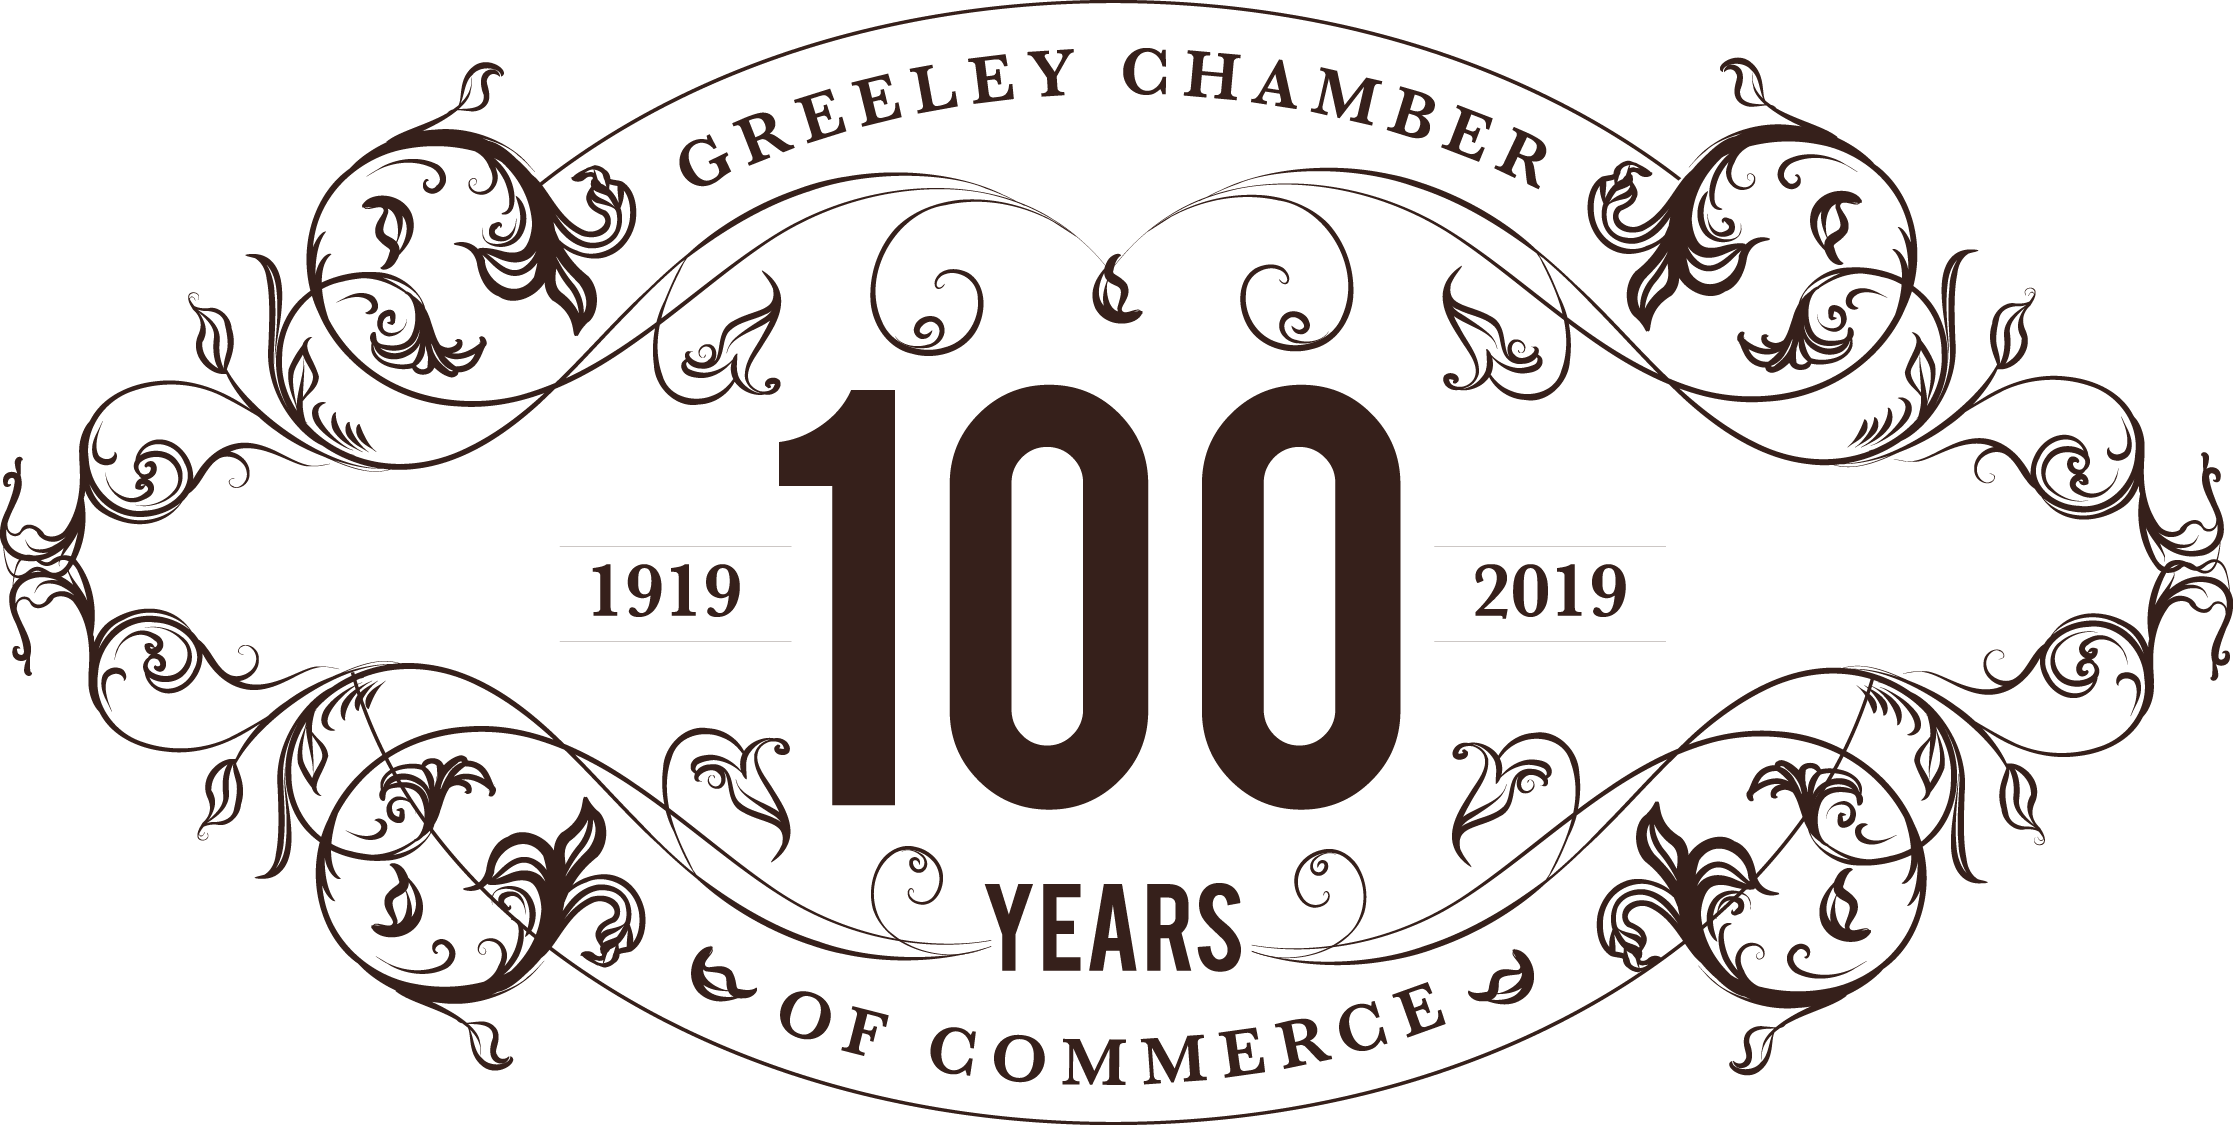 100 year anniversary clipart clip art black and white stock Greeley Chamber - 100th Anniversary Celebration & Annual Banquet clip art black and white stock